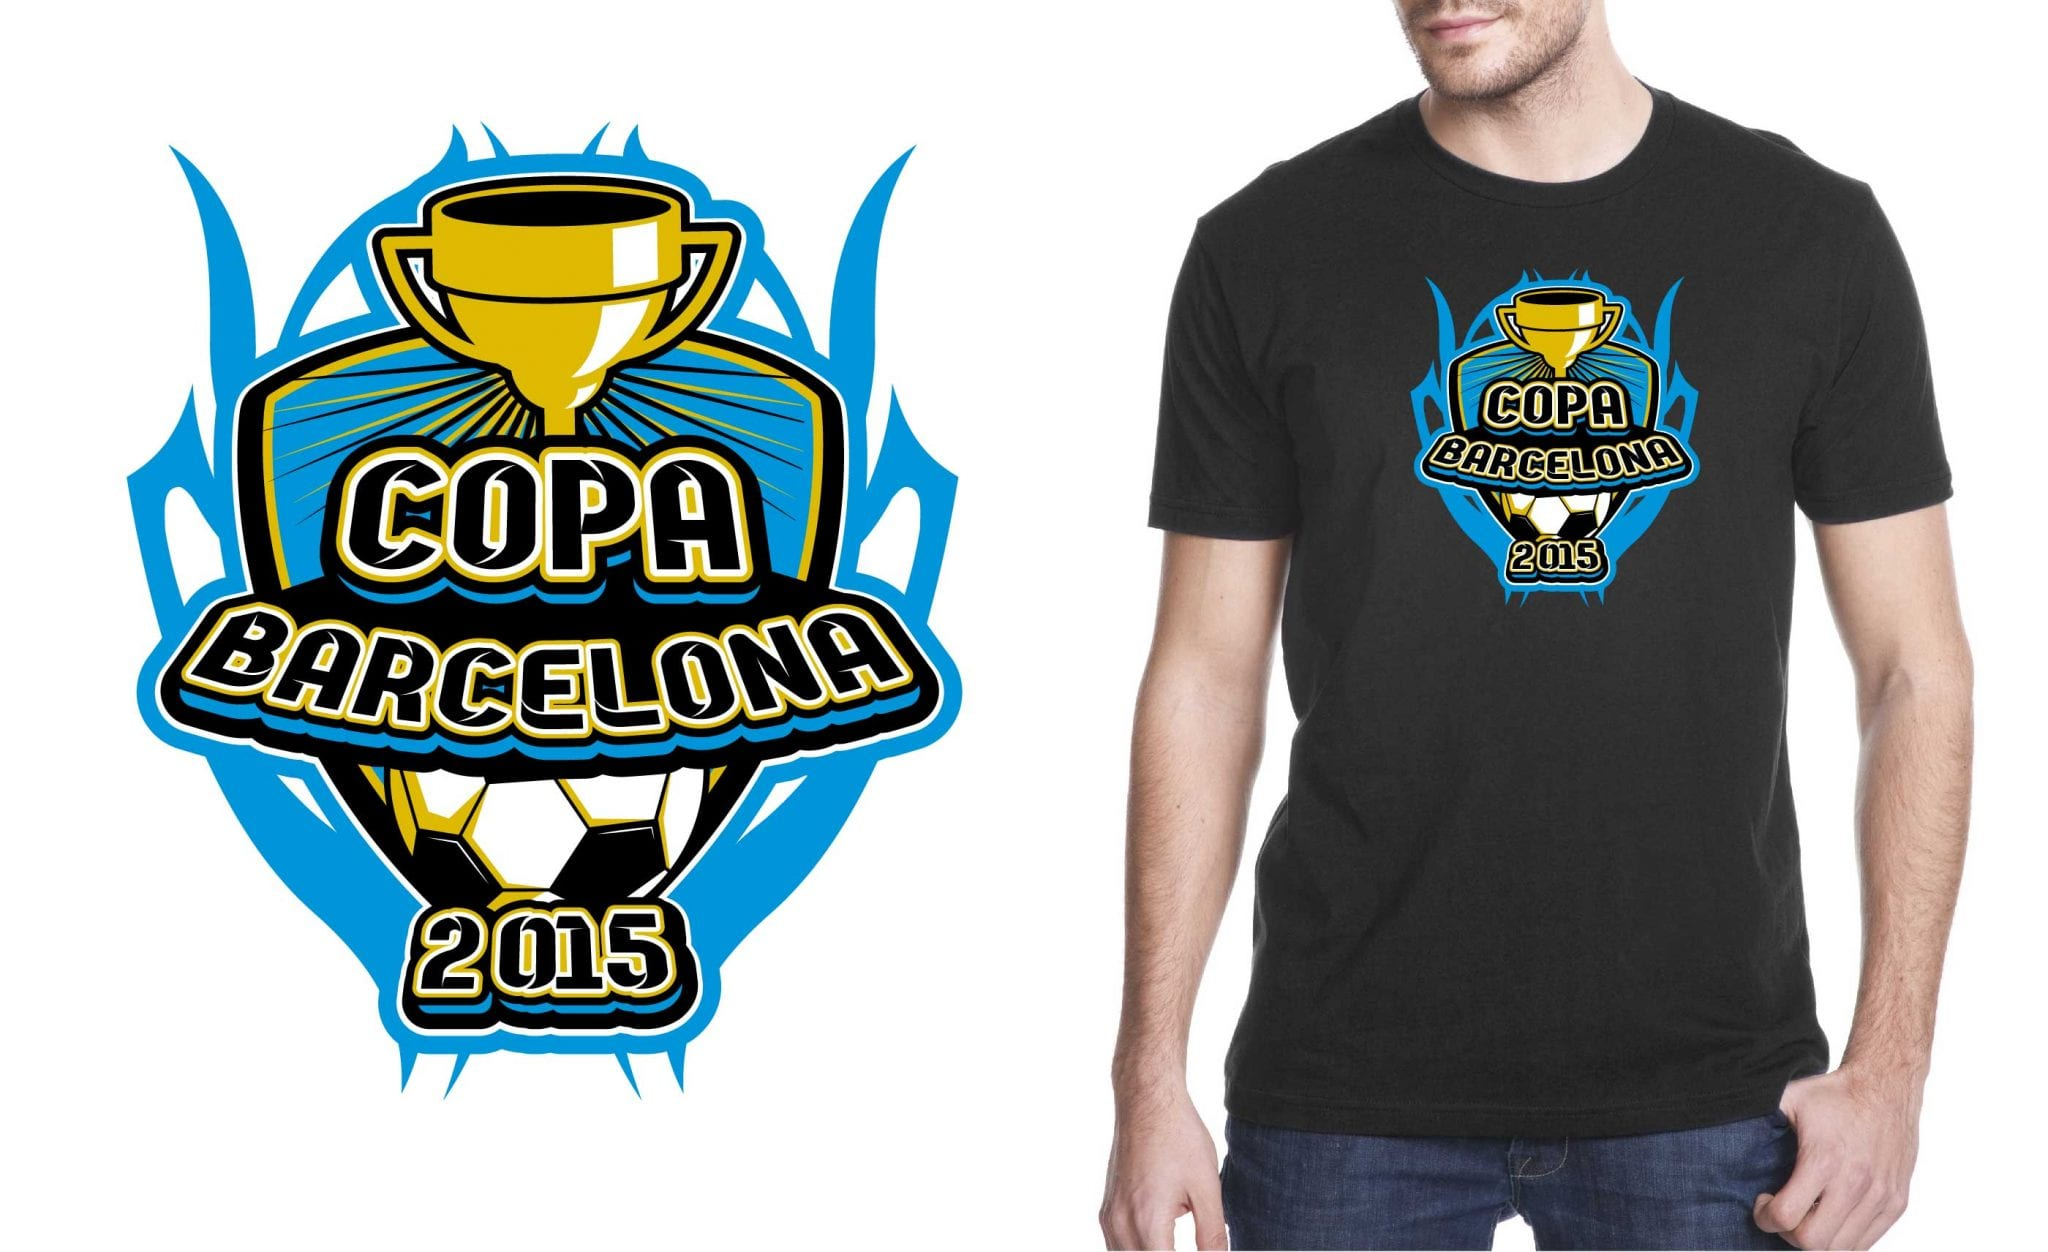 Eyecatching vector logo design for soccer event for tshirt 2015 Copa Barcelona